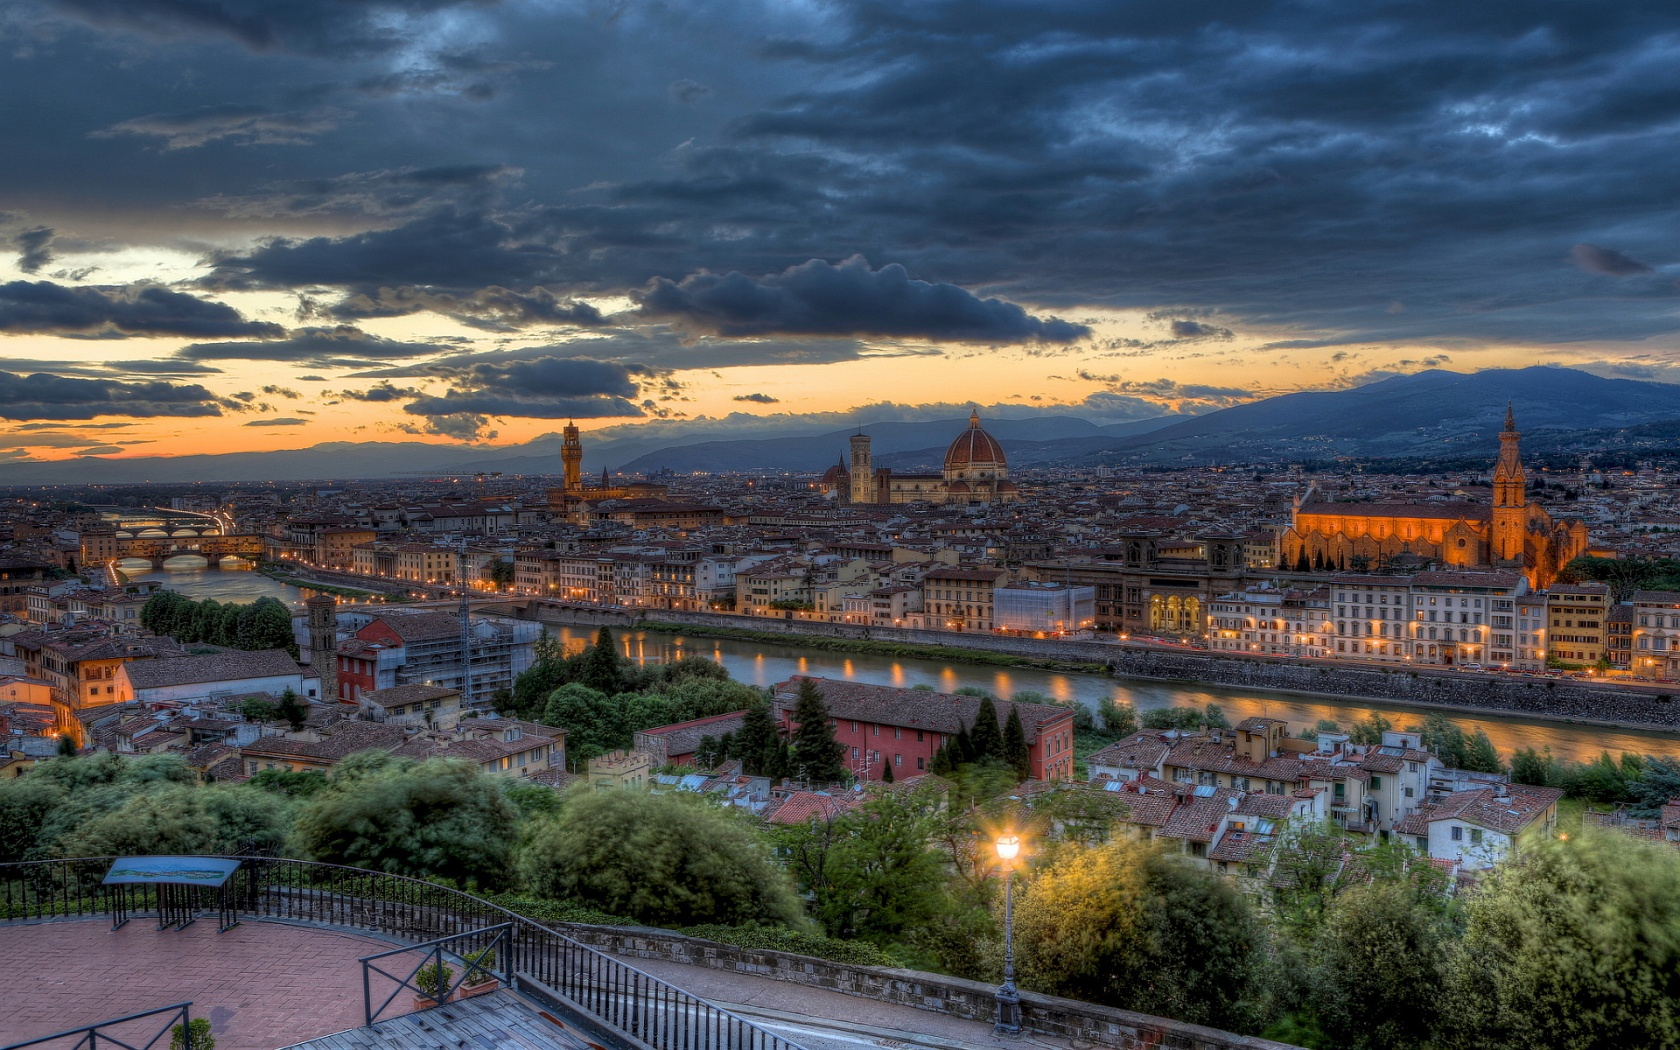 Florence evening Wallpaper in 1680x1050 Widescreen